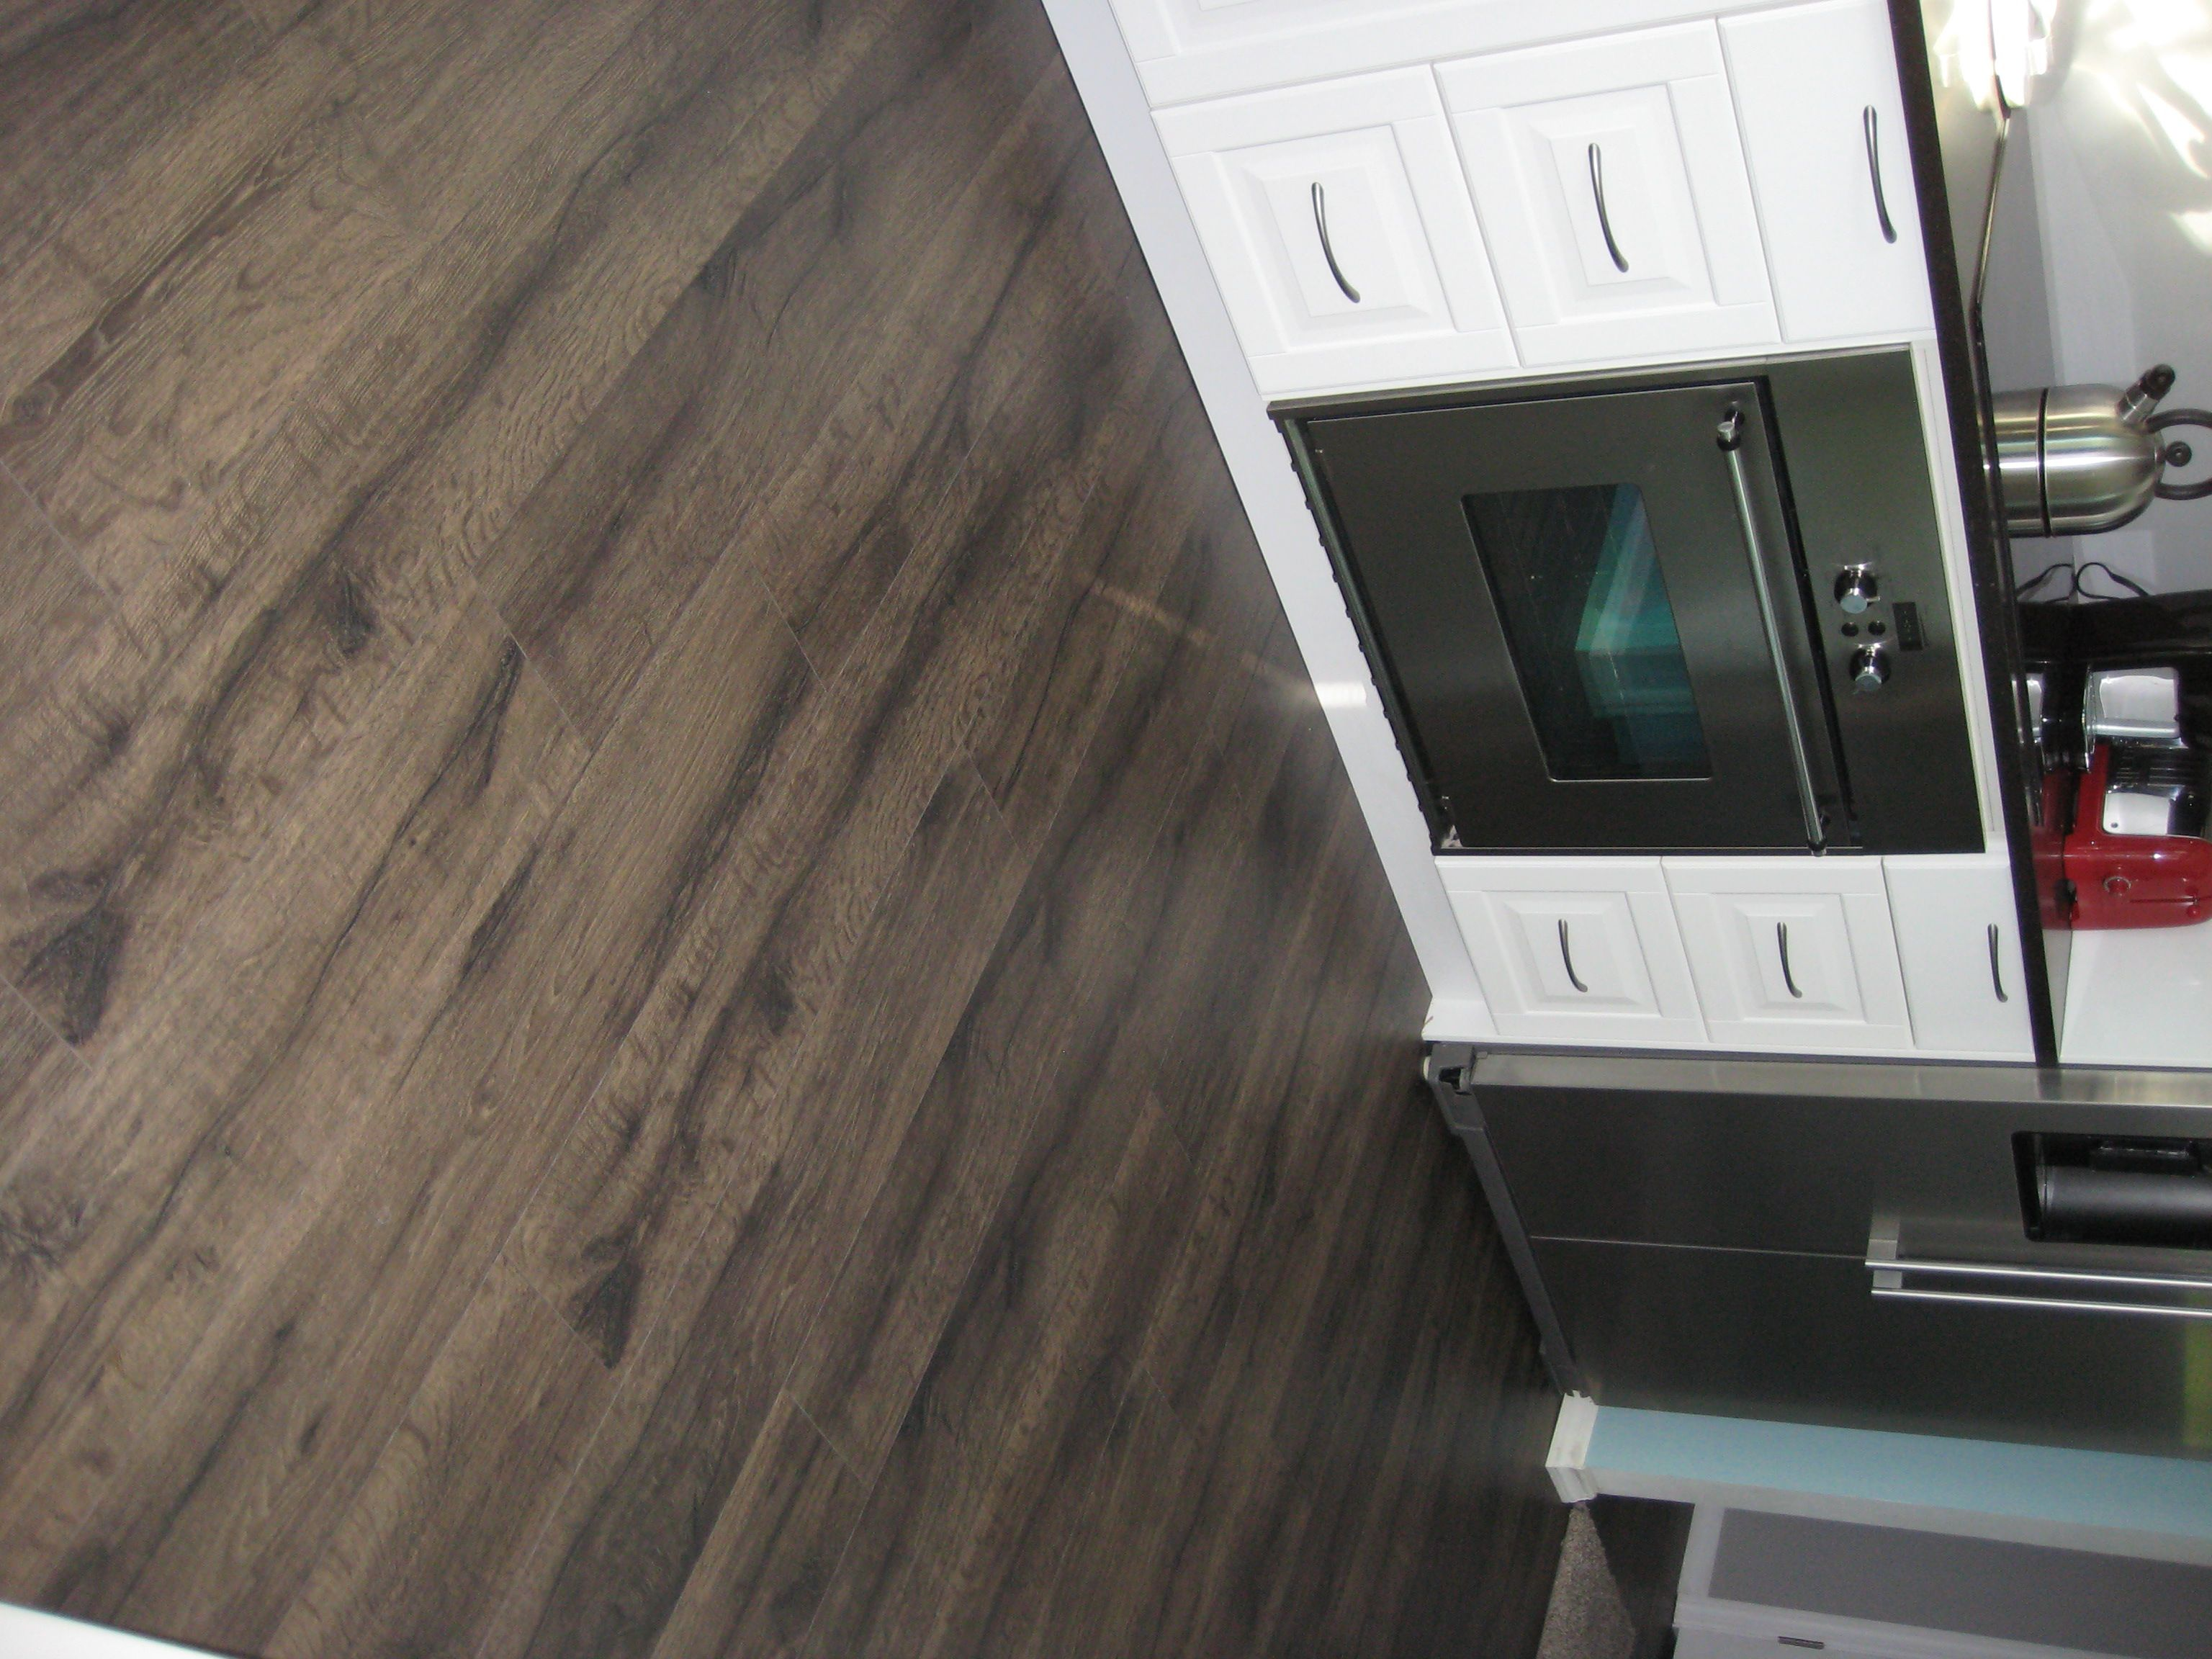 quick step reclaime flint oak laminate flooring - photo